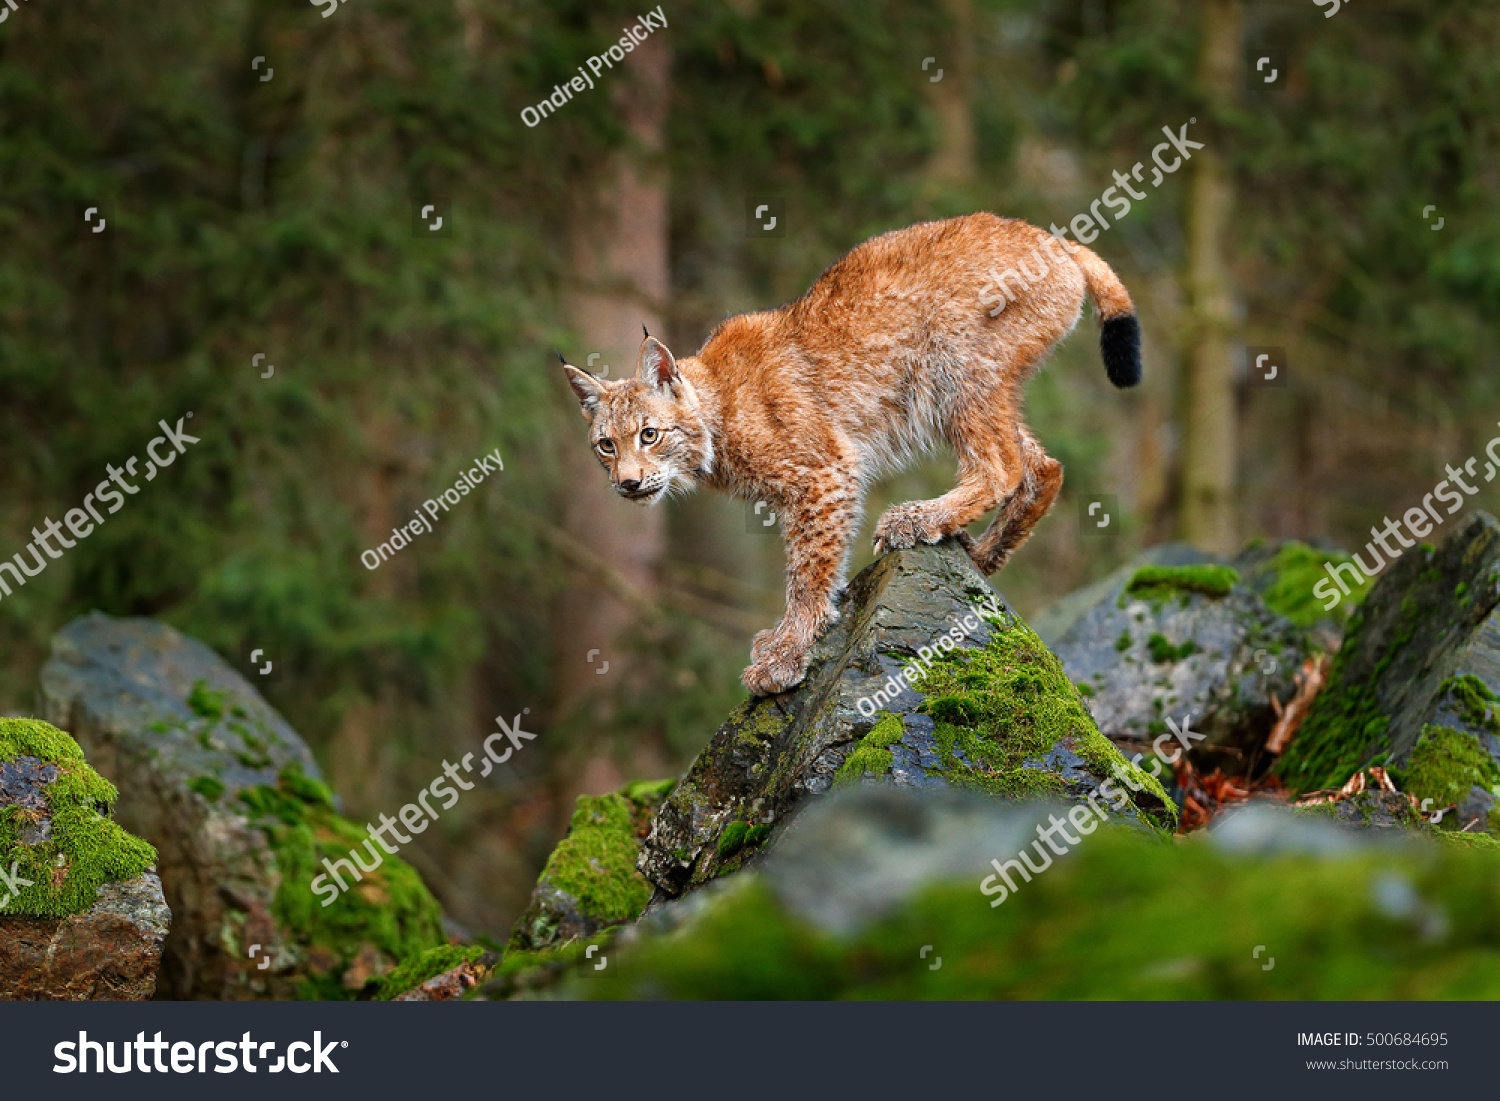 Lynx eurasian wild cat walking on 500684695 shutterstock lynx eurasian wild cat walking on green moss stone with green forest in background voltagebd Image collections